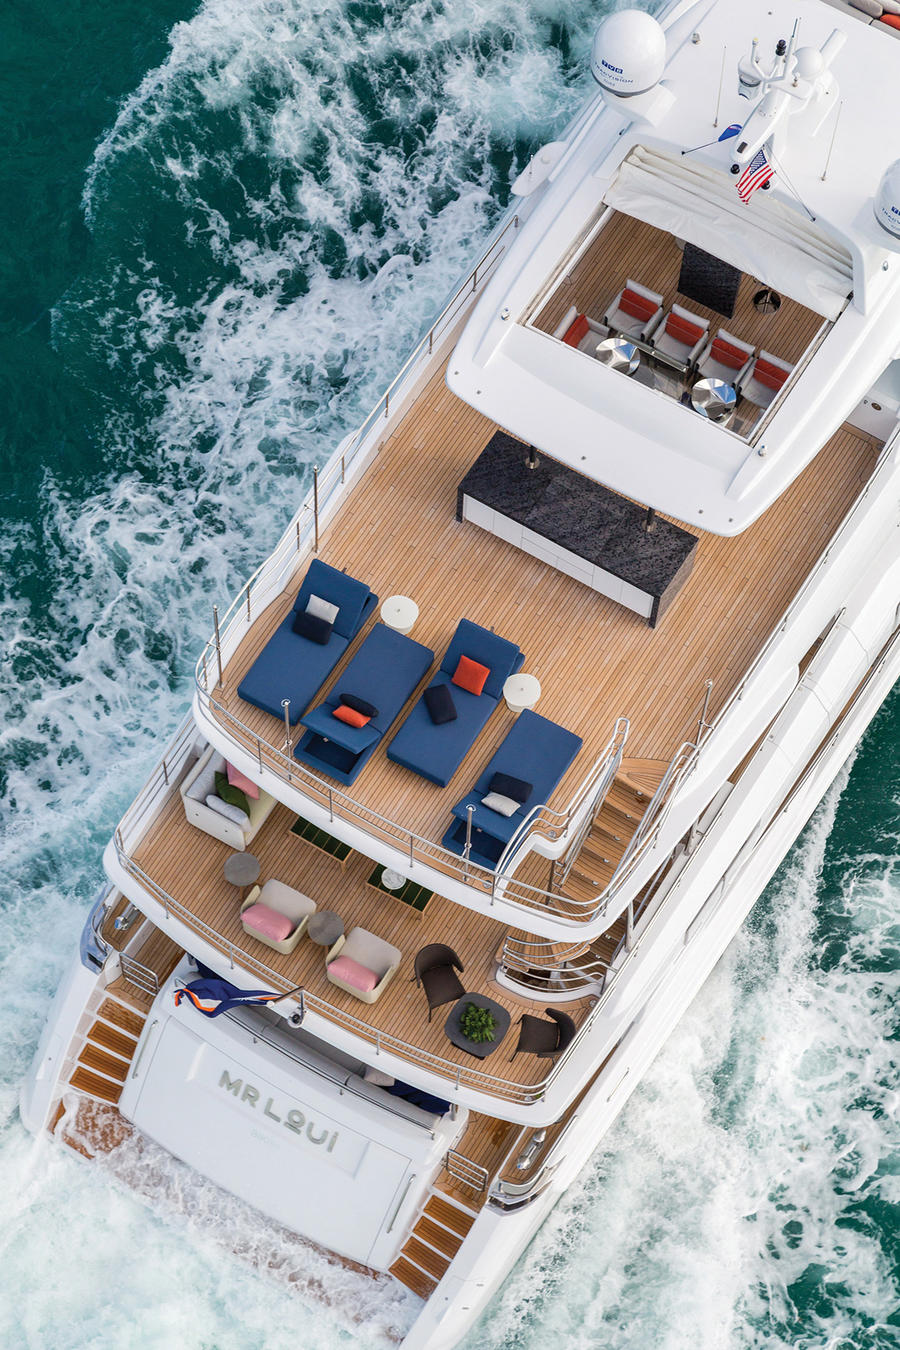 At sea: How to cash in on the latest trends in luxury yachting